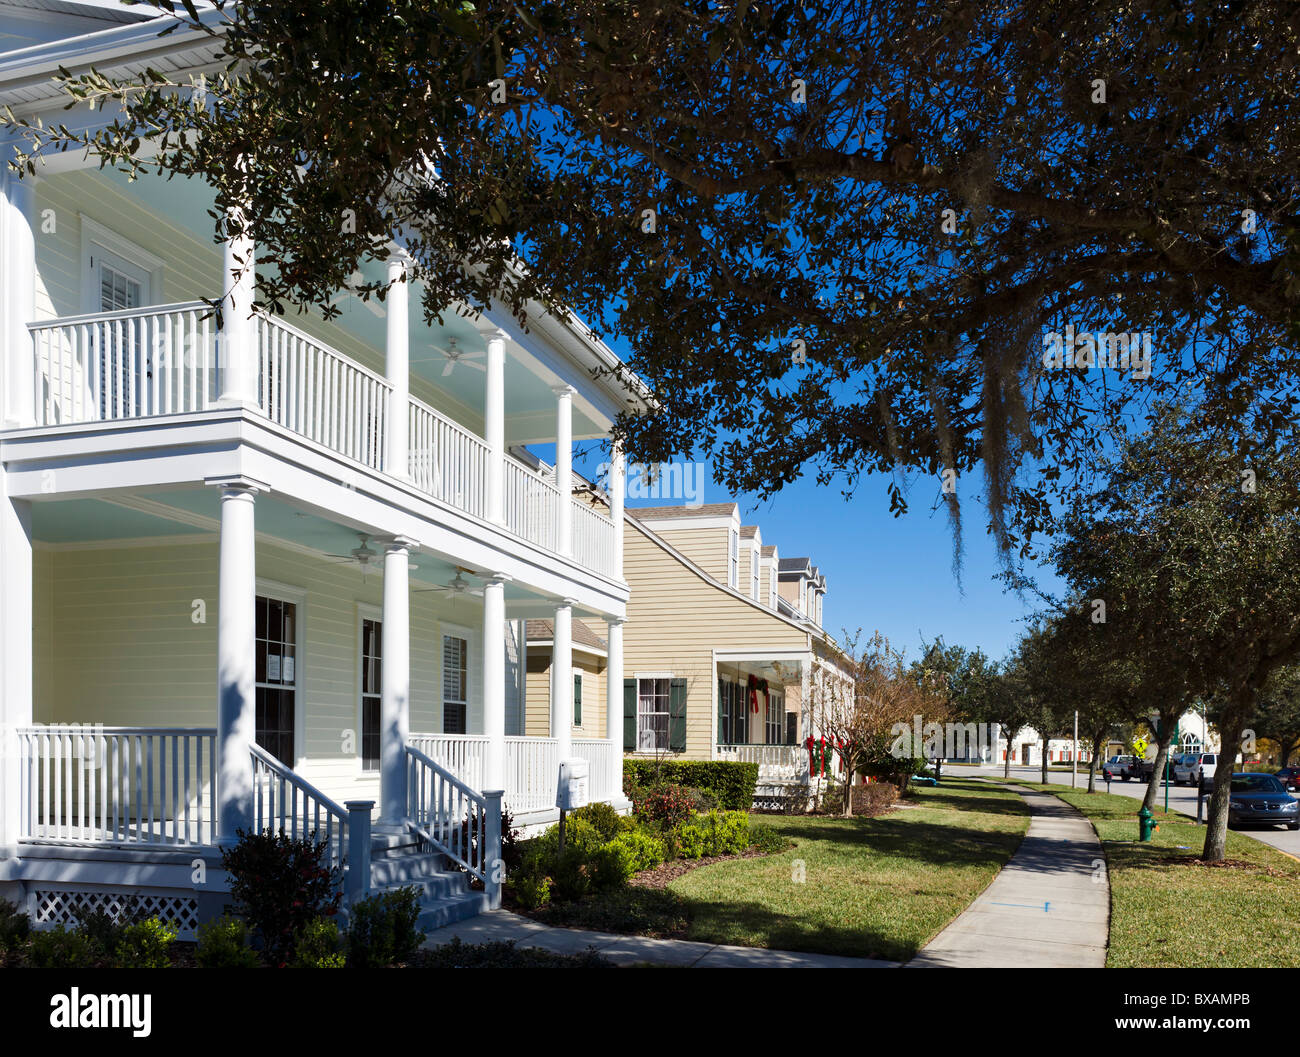 Houses on Celebration Ave near the centre of the Disney purpose built township of Celebration, Kissimmee, Orlando, - Stock Image